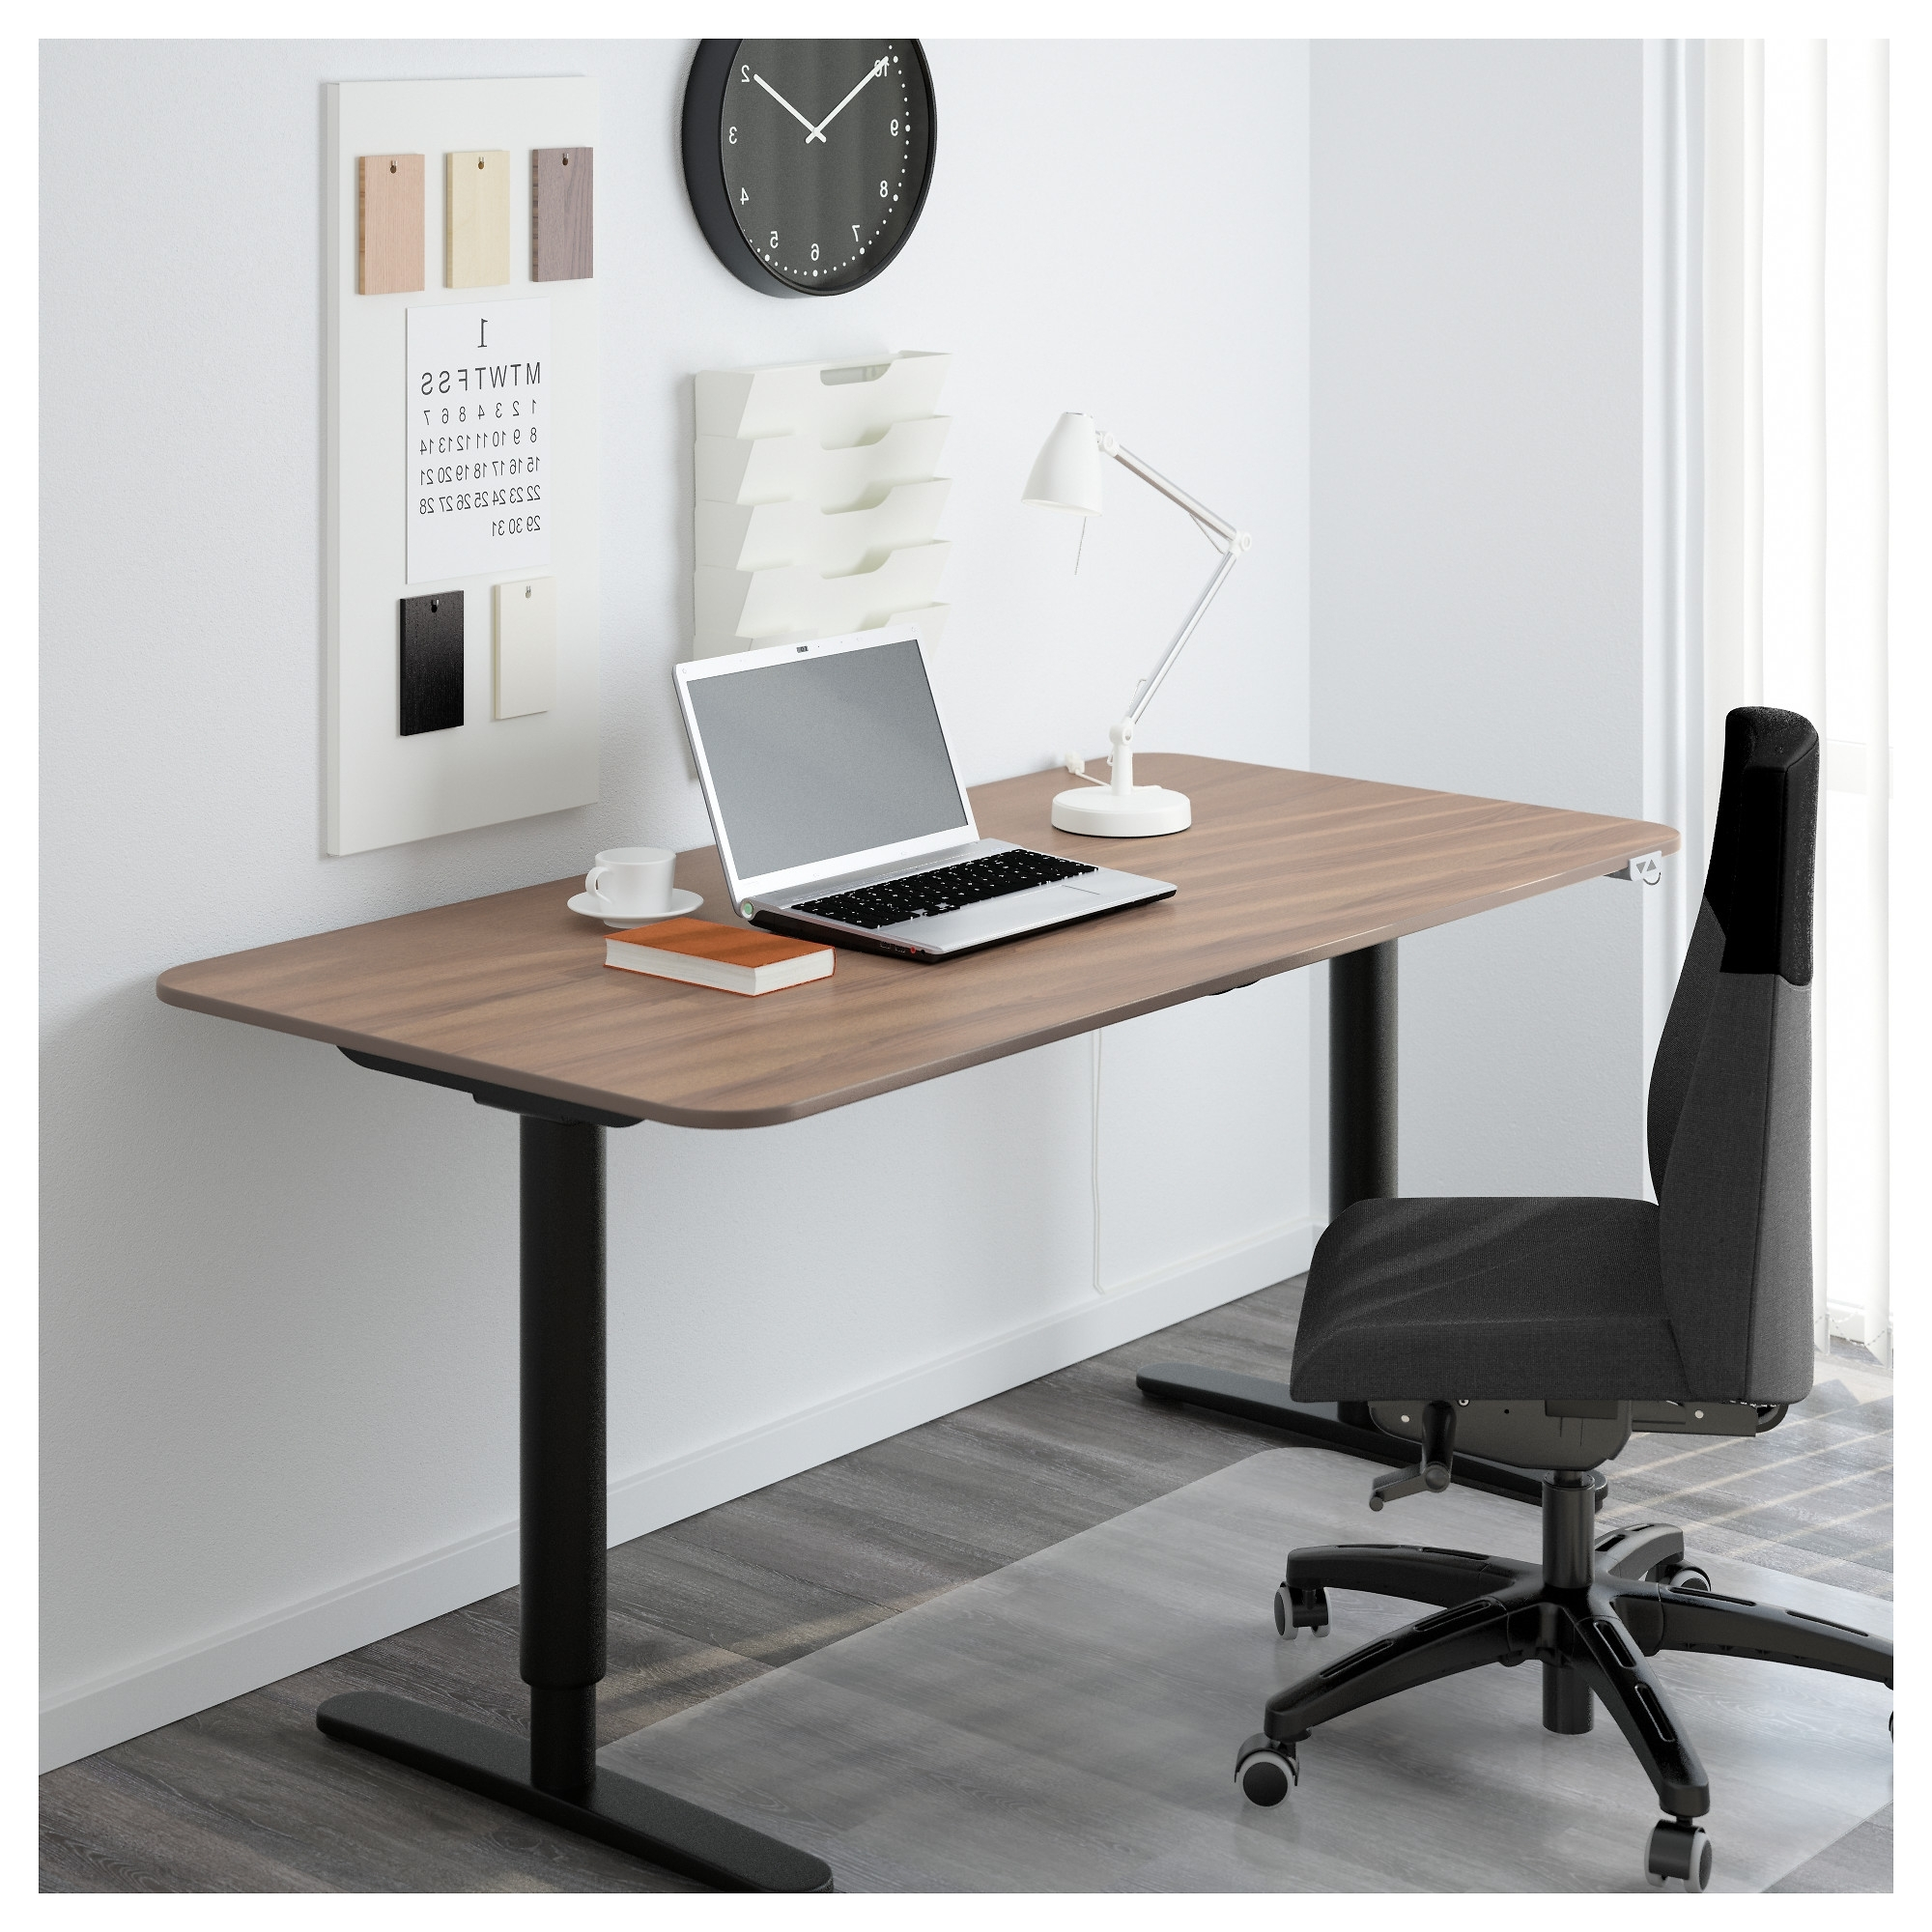 Trendy Ikea Galant Computer Desks Intended For Bekant Desk Sit/stand – Black Brown/white – Ikea (View 17 of 20)